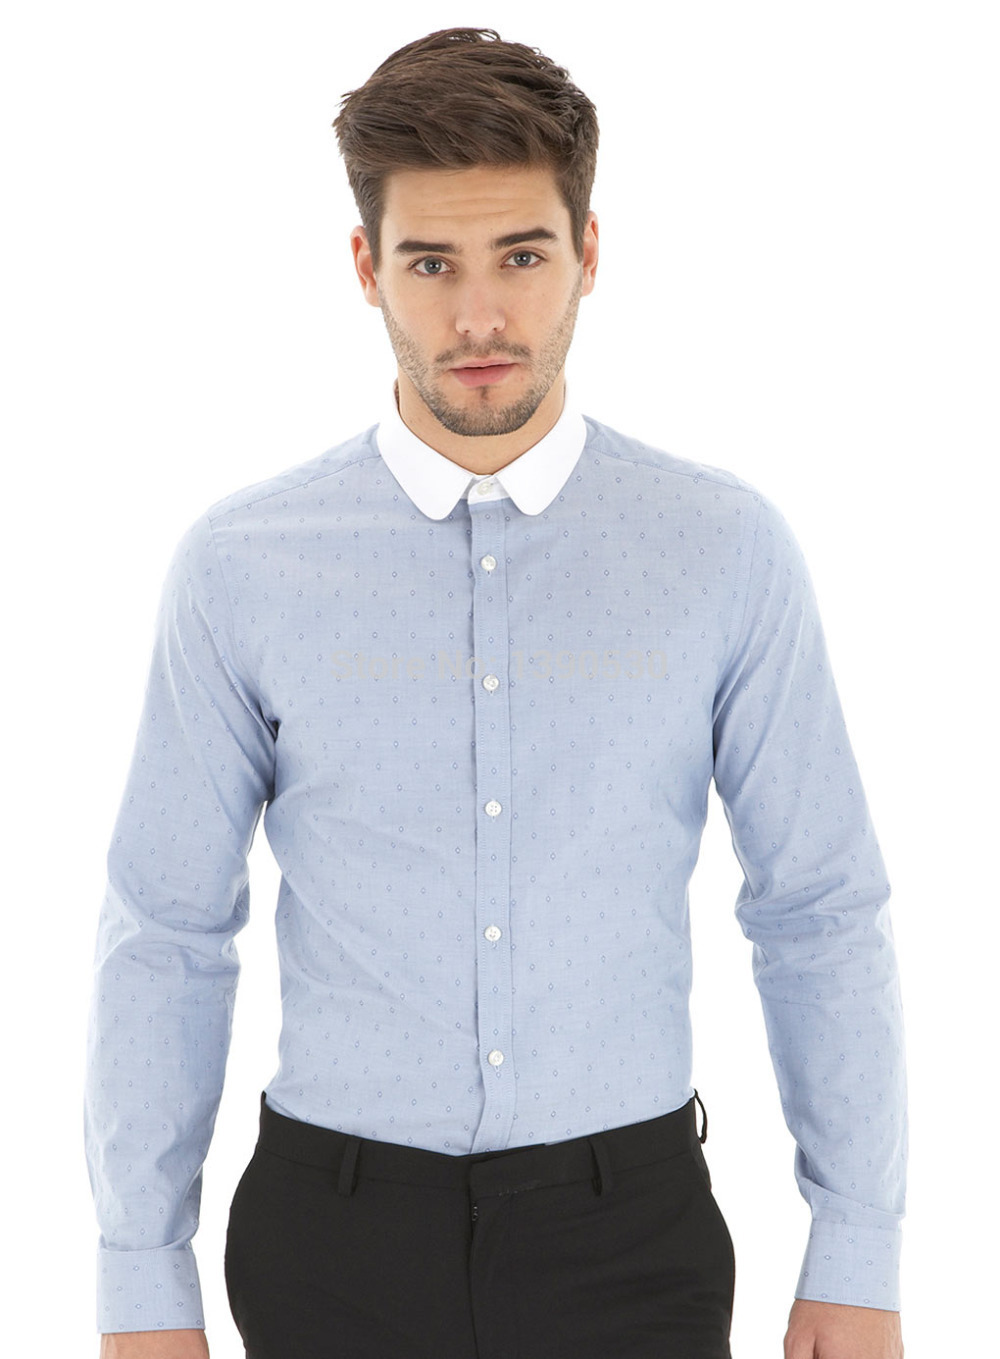 tailored shirts new design 100% cotton blue dot with white contrast round collar tailored wdoleqi